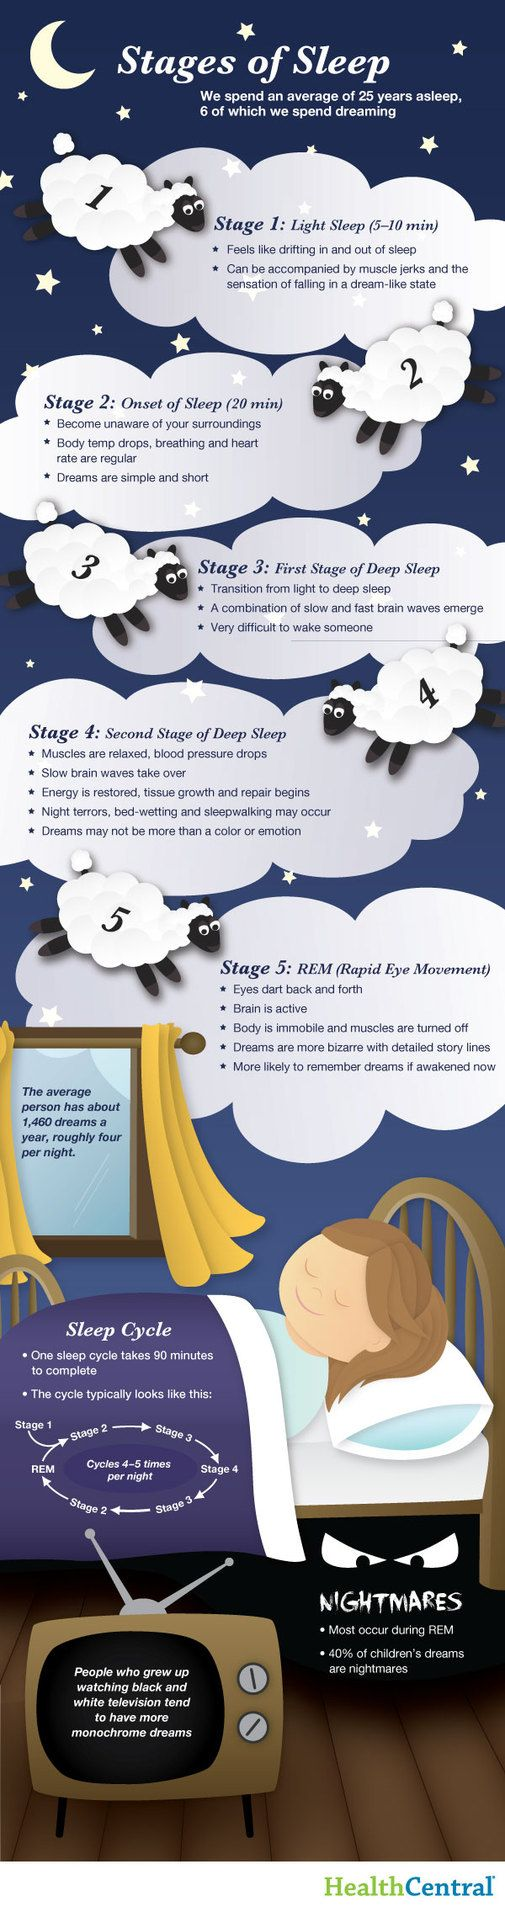 According to my sleep study... I go into REM sleep approximately 3-5 seconds after stage 1 sleep. I rarely go into stage 4 sleep and if I do it isn't for long. It's hard to get through a day, even with tons of naps, when your brain never goes through the process of restoring energy and brain tissue growth and repair. So yes I sleep too much but none of it actually helps me feel that much better.